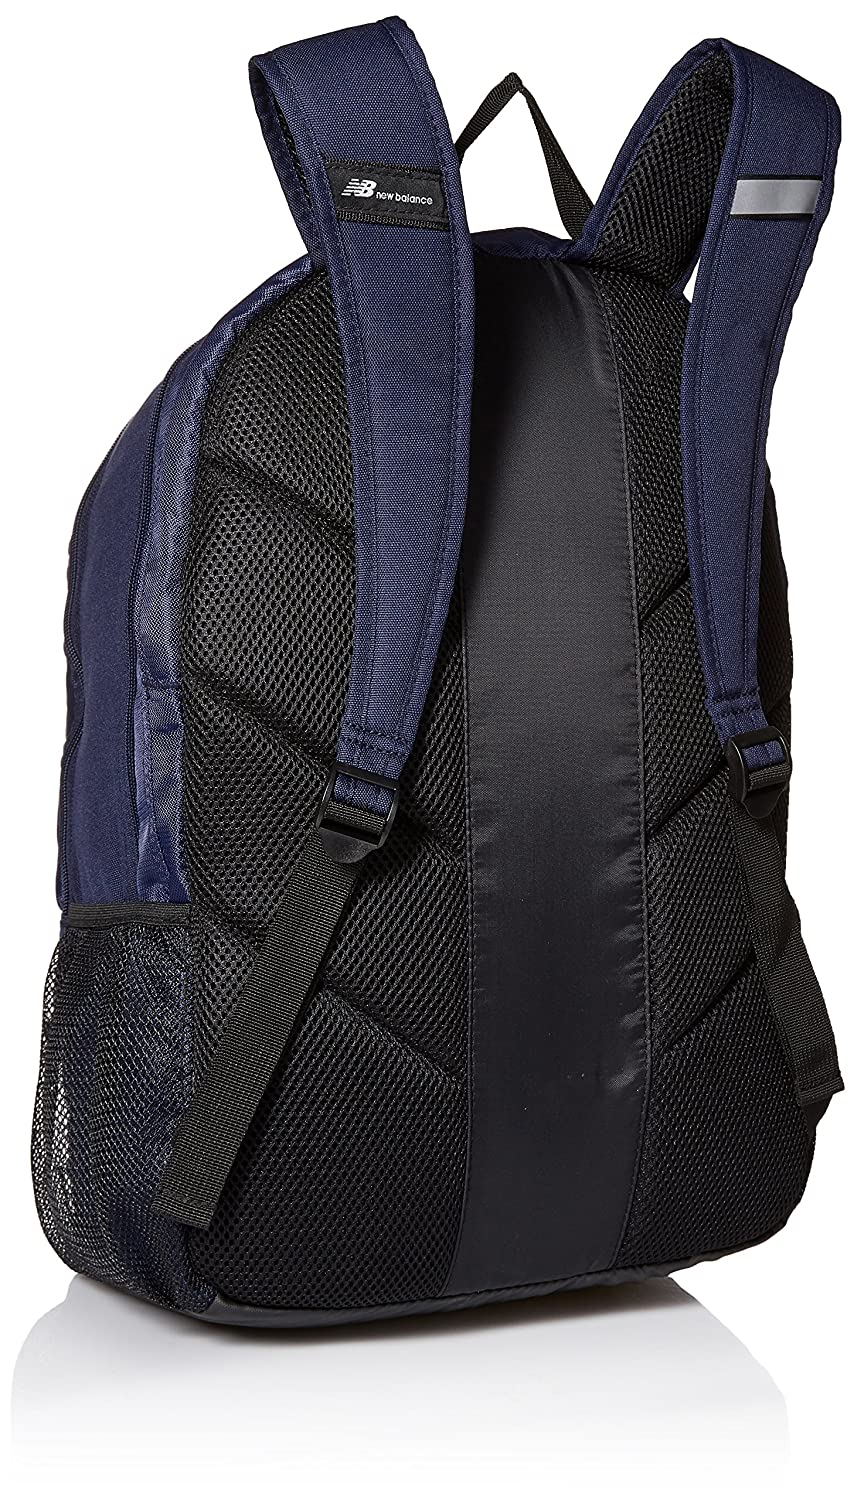 3cdb9f98ff543 Backpacks Upto 80% OFF- Buy Backpacks for Men ... - Snapdeal. Buy Backpacks  for men & women online starting at Rs. 299 in India.